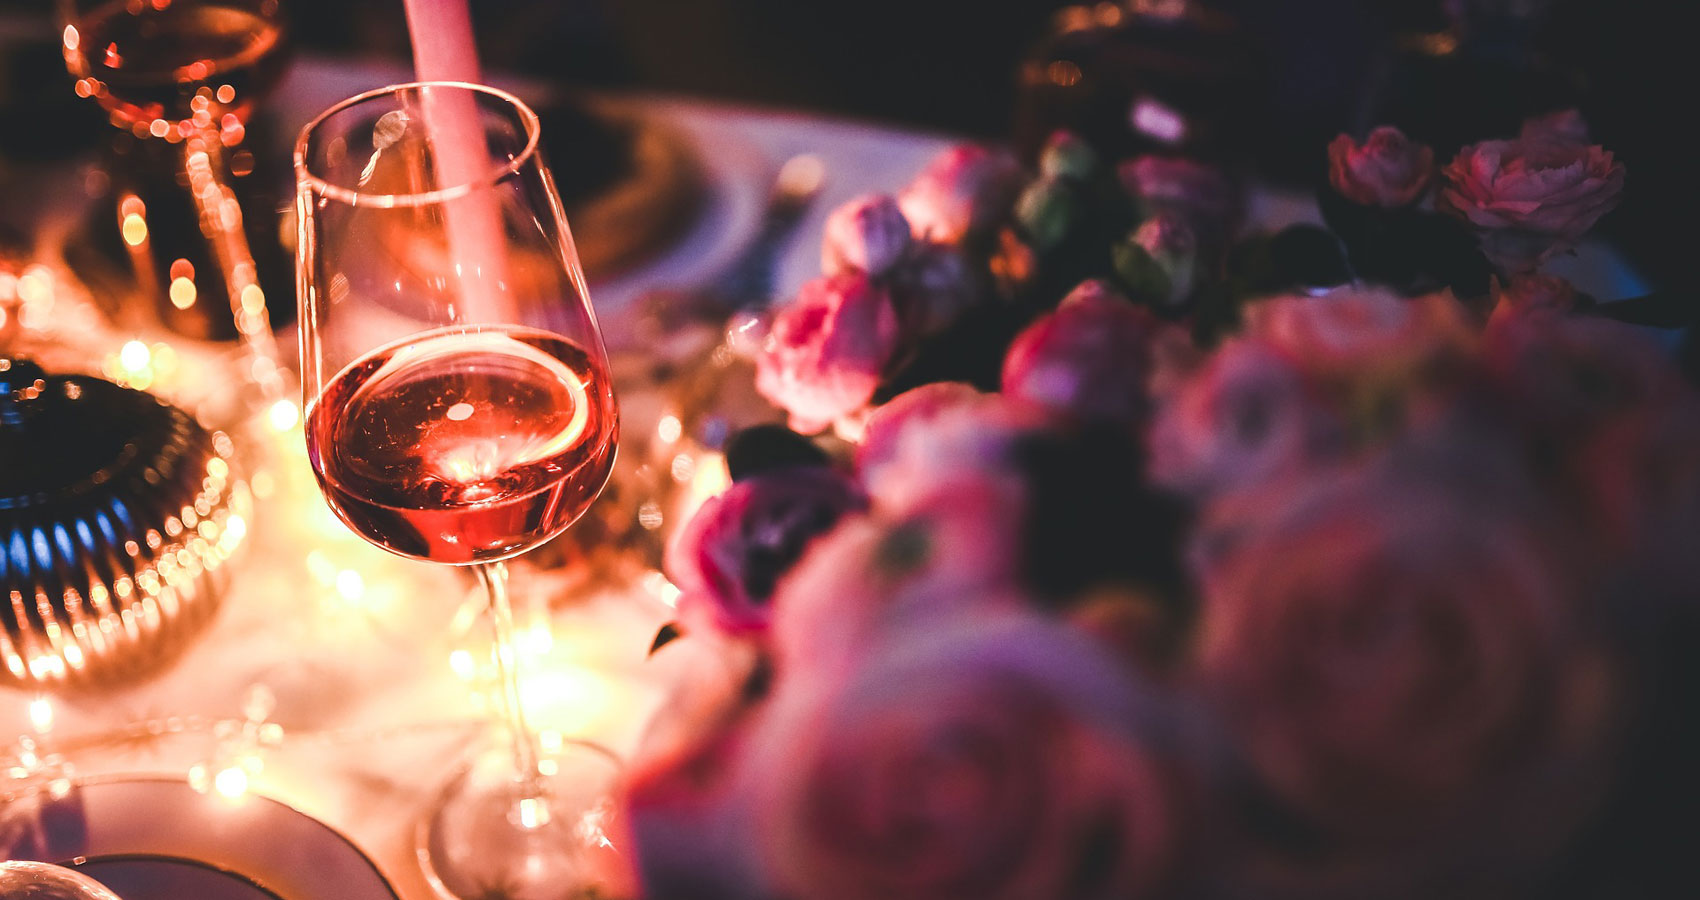 Too Much Wine, a poem written by Mickey Kulp at Spillwords.com